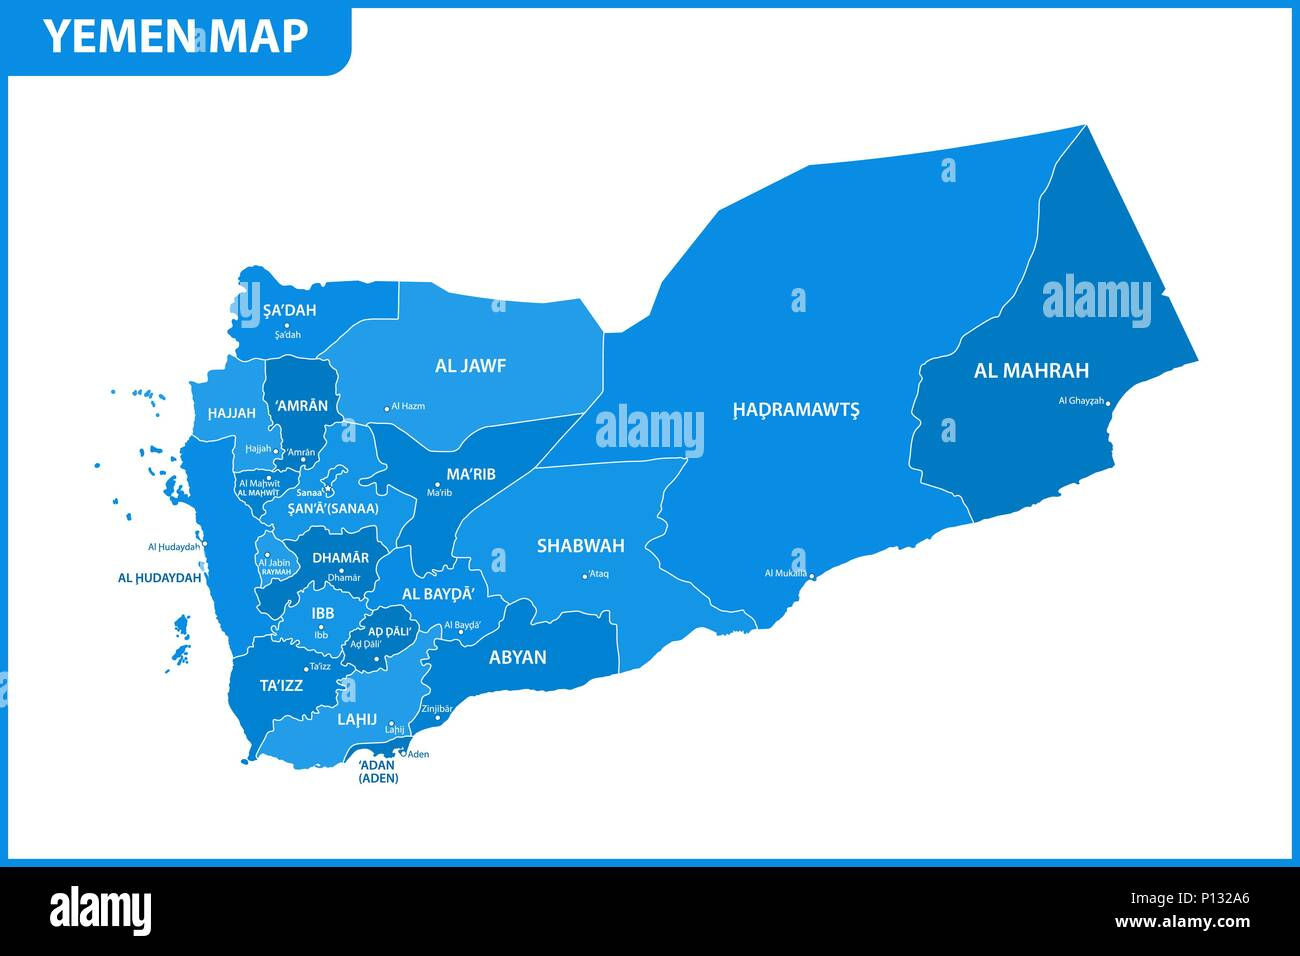 The detailed map of Yemen with regions or states and cities, capital. Administrative division. Stock Vector